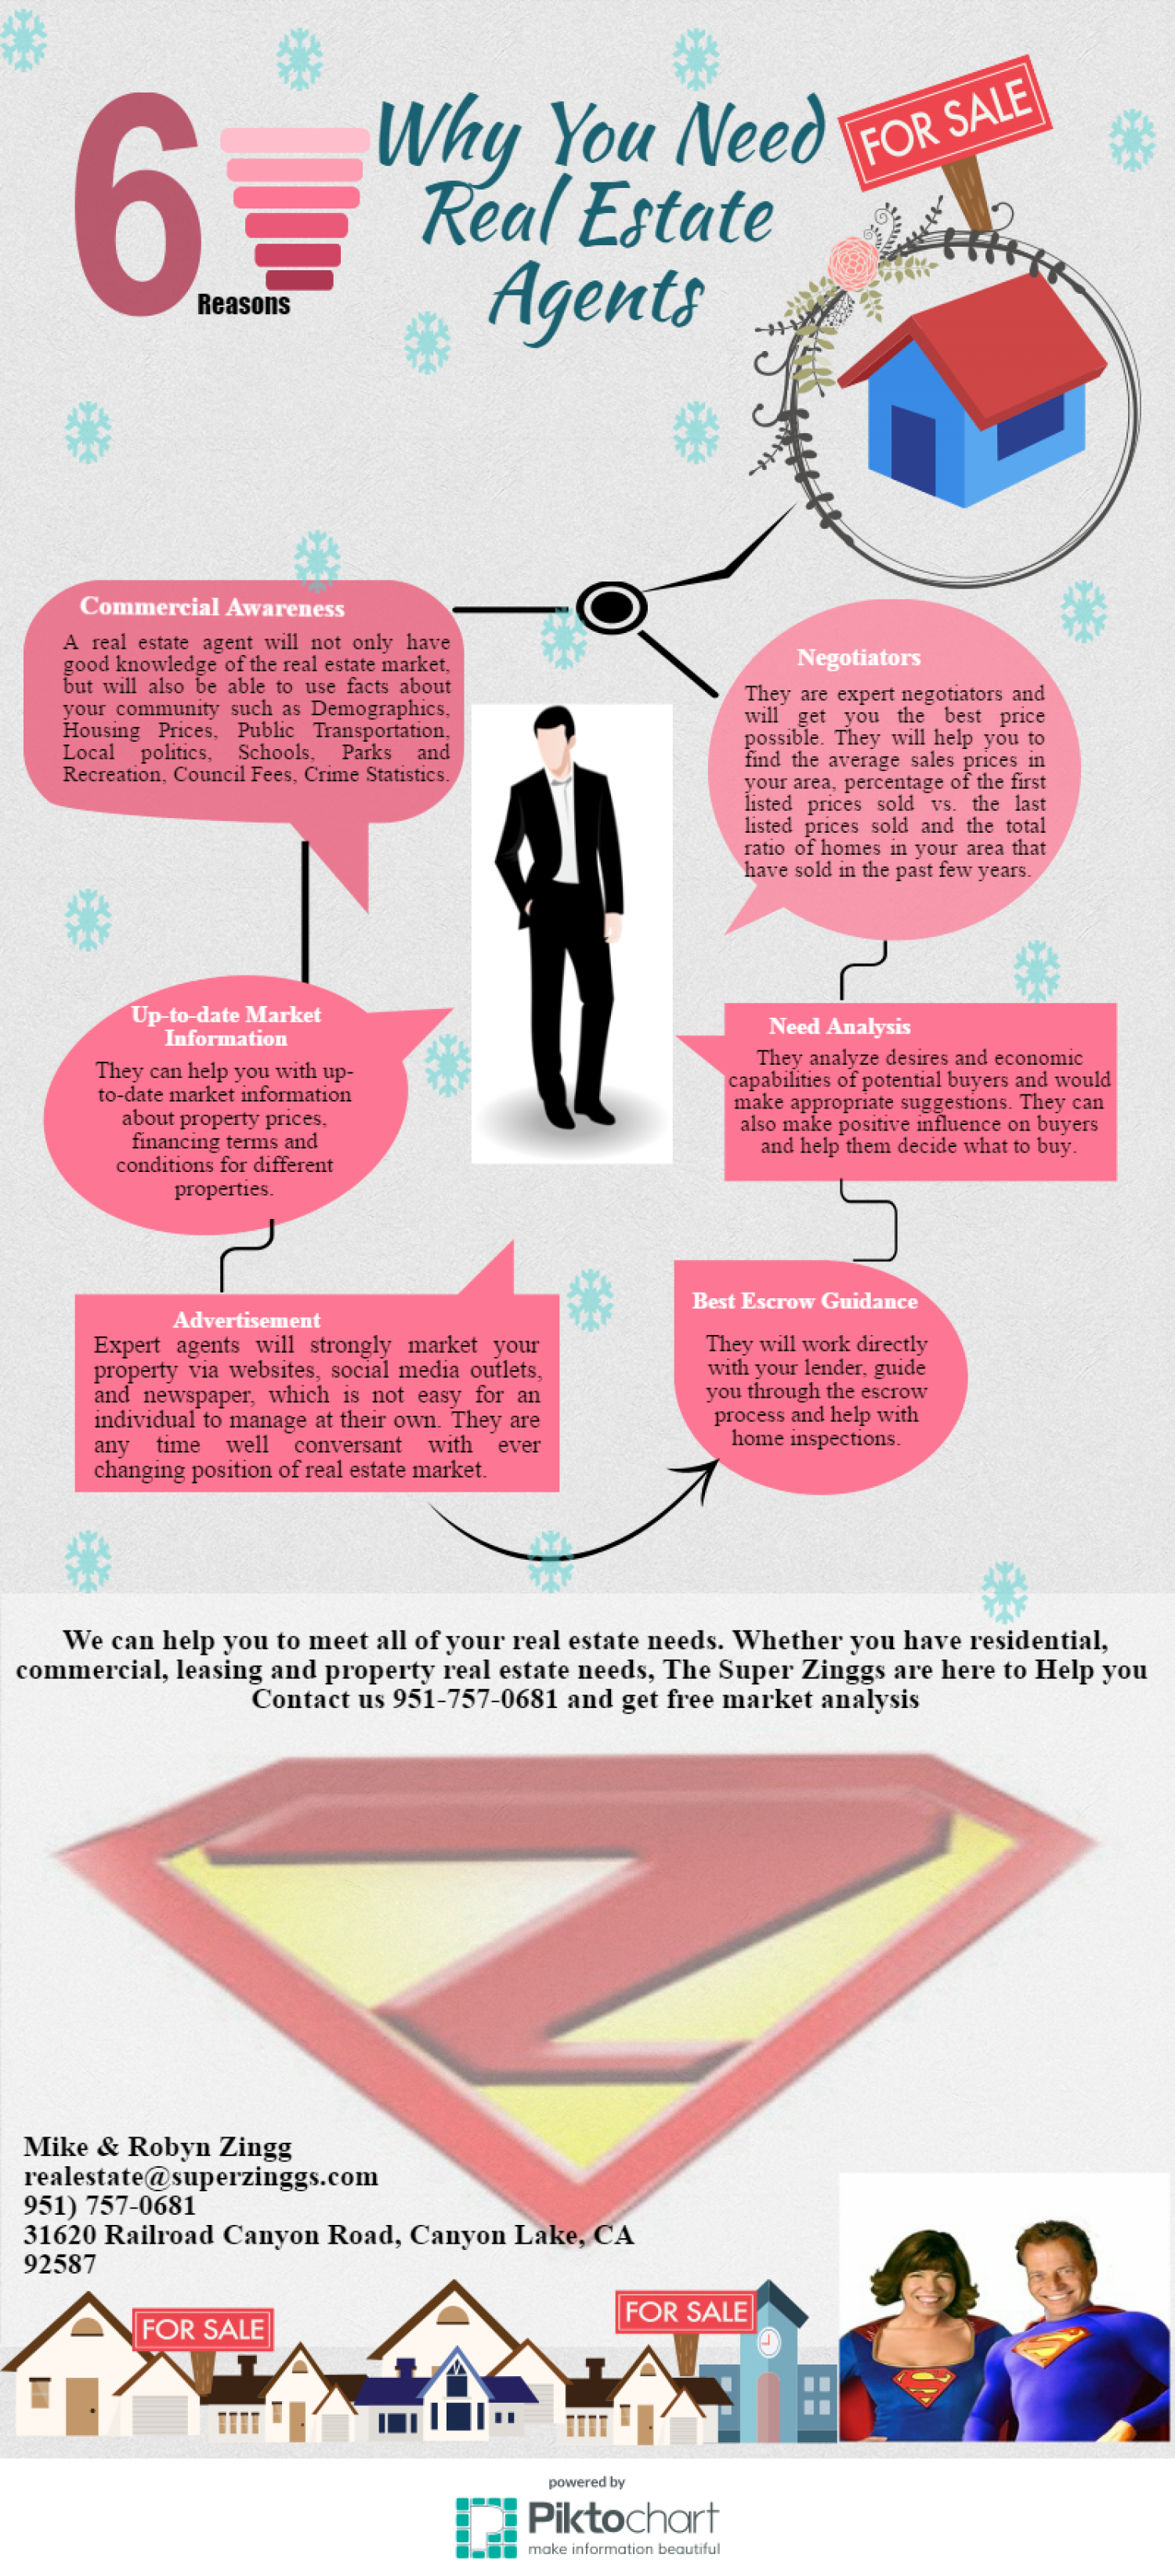 Top Reasons Why You Need Real Estate Agents to Buy or Sell Homes Infographic